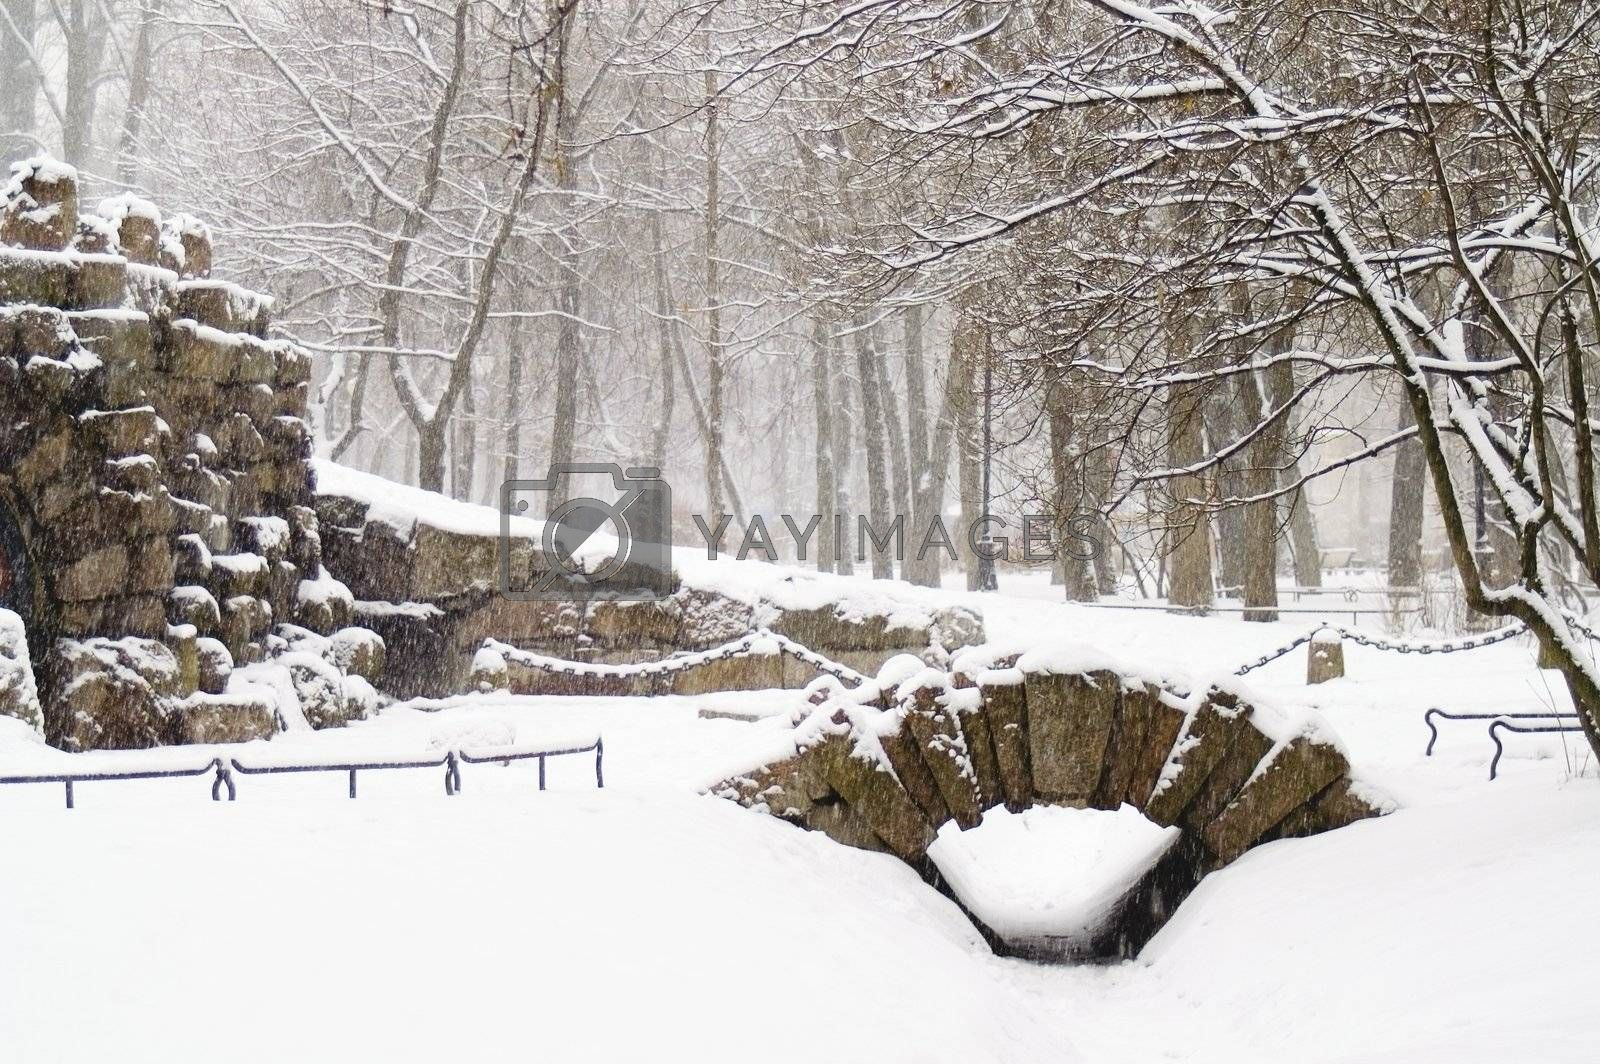 A grotto and a small bridge in a winter park at snowfall.